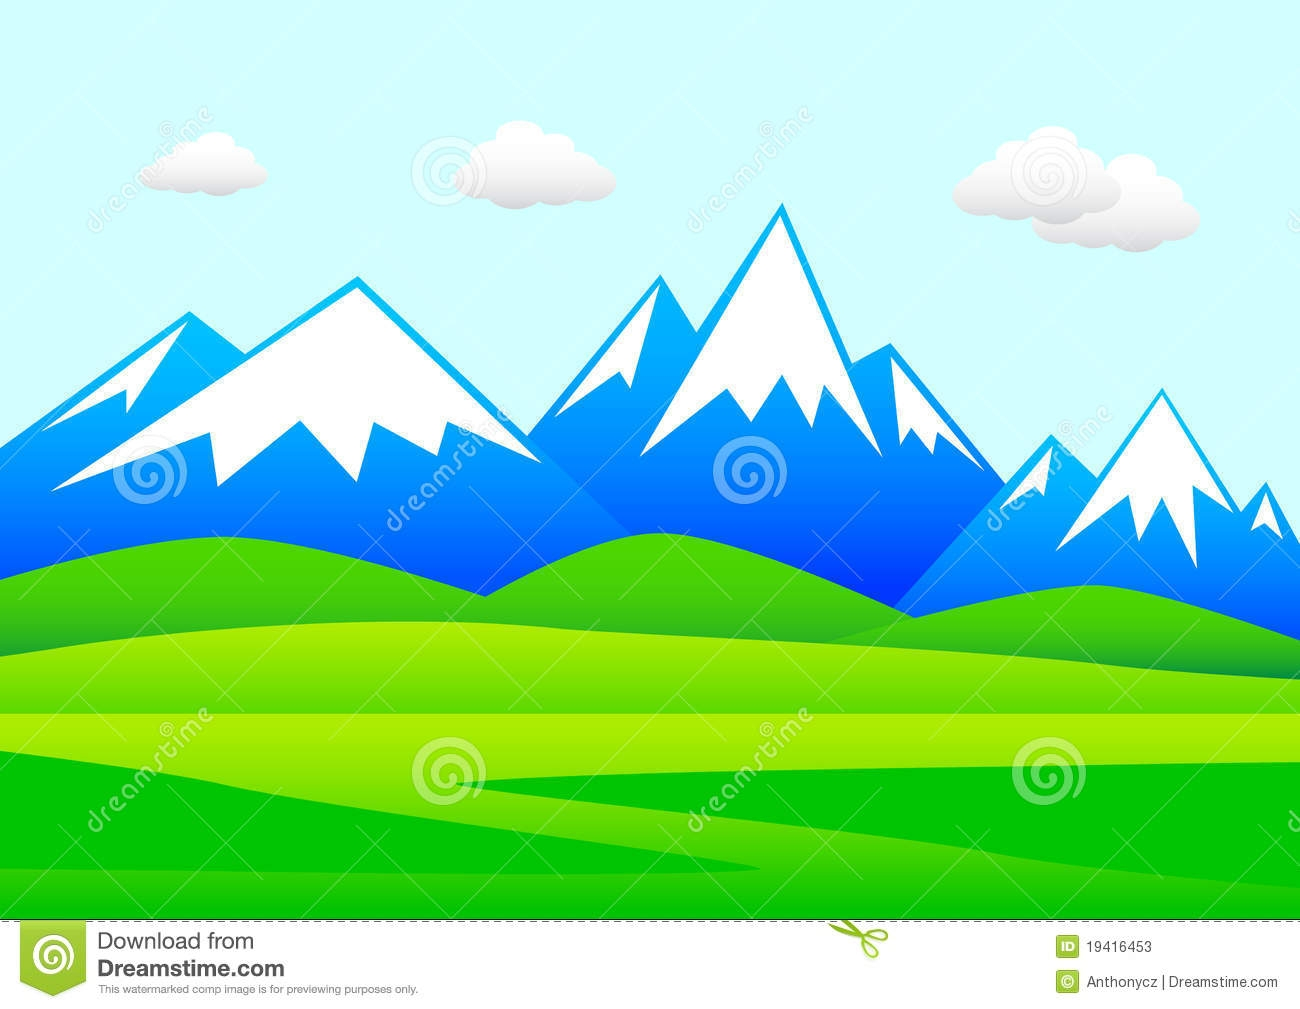 Mountain at getdrawings com. Landscape clipart